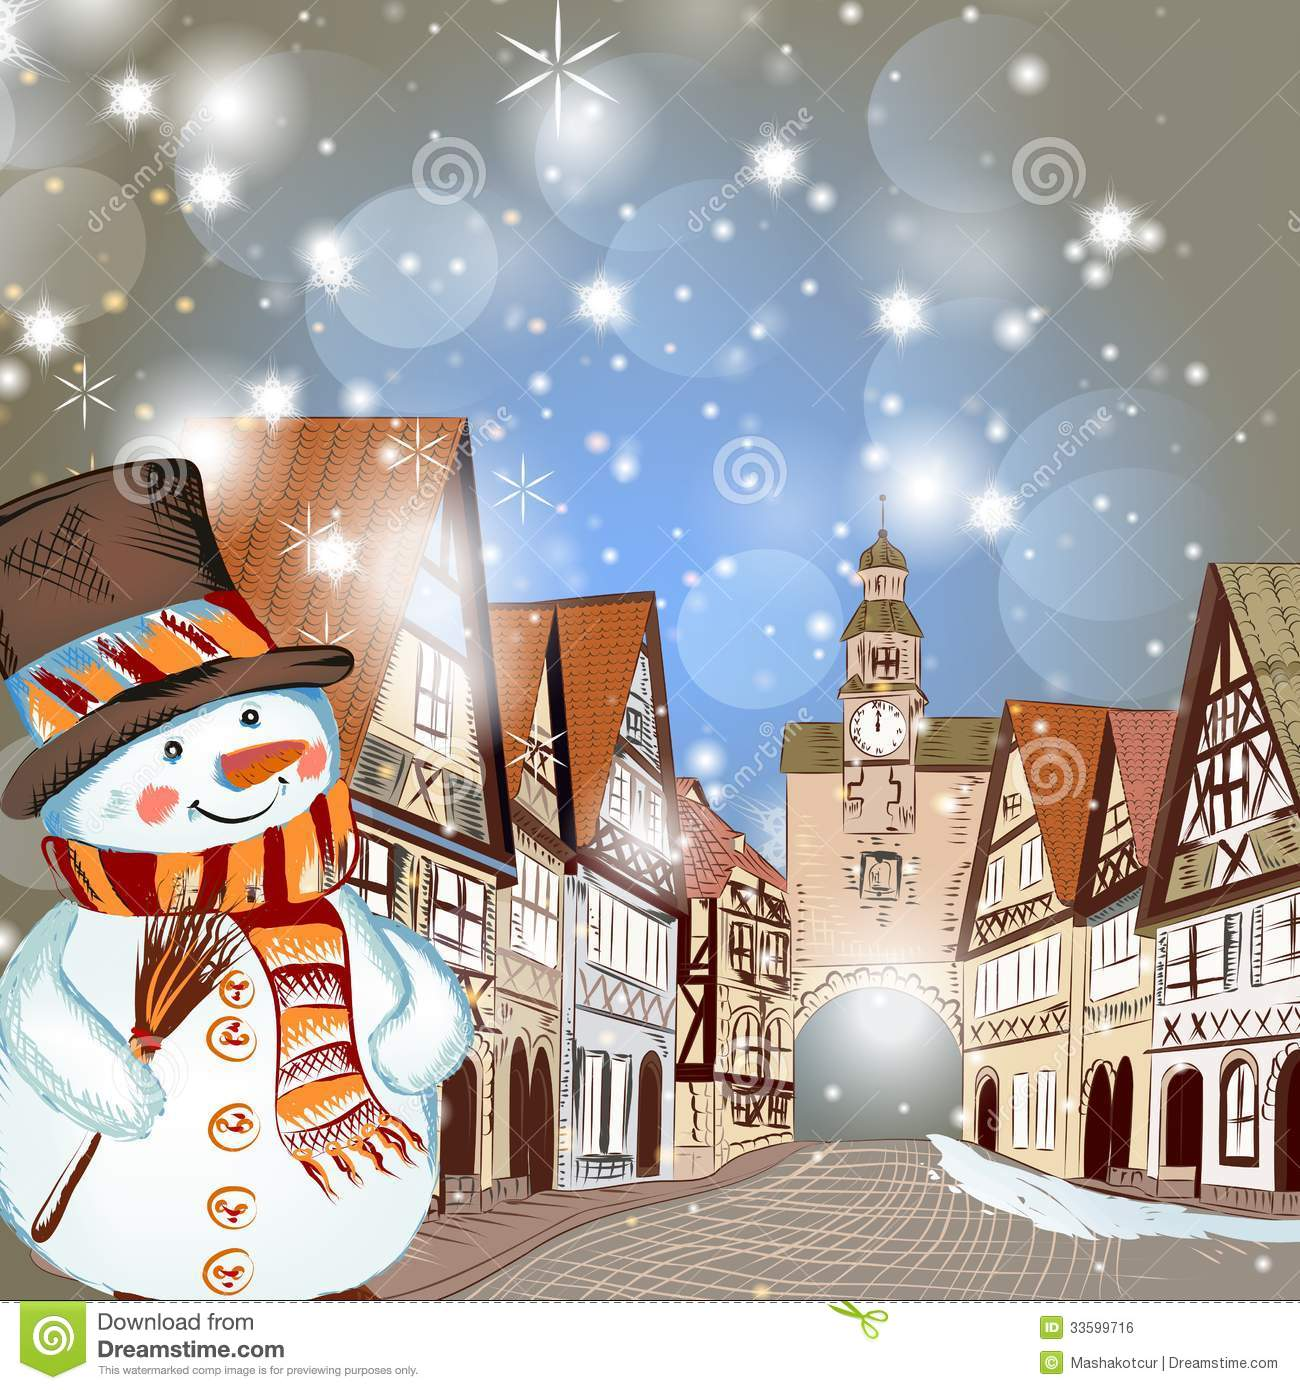 Christmas Scene With Houses In Snow And Cute Snowman Royalty Free ...